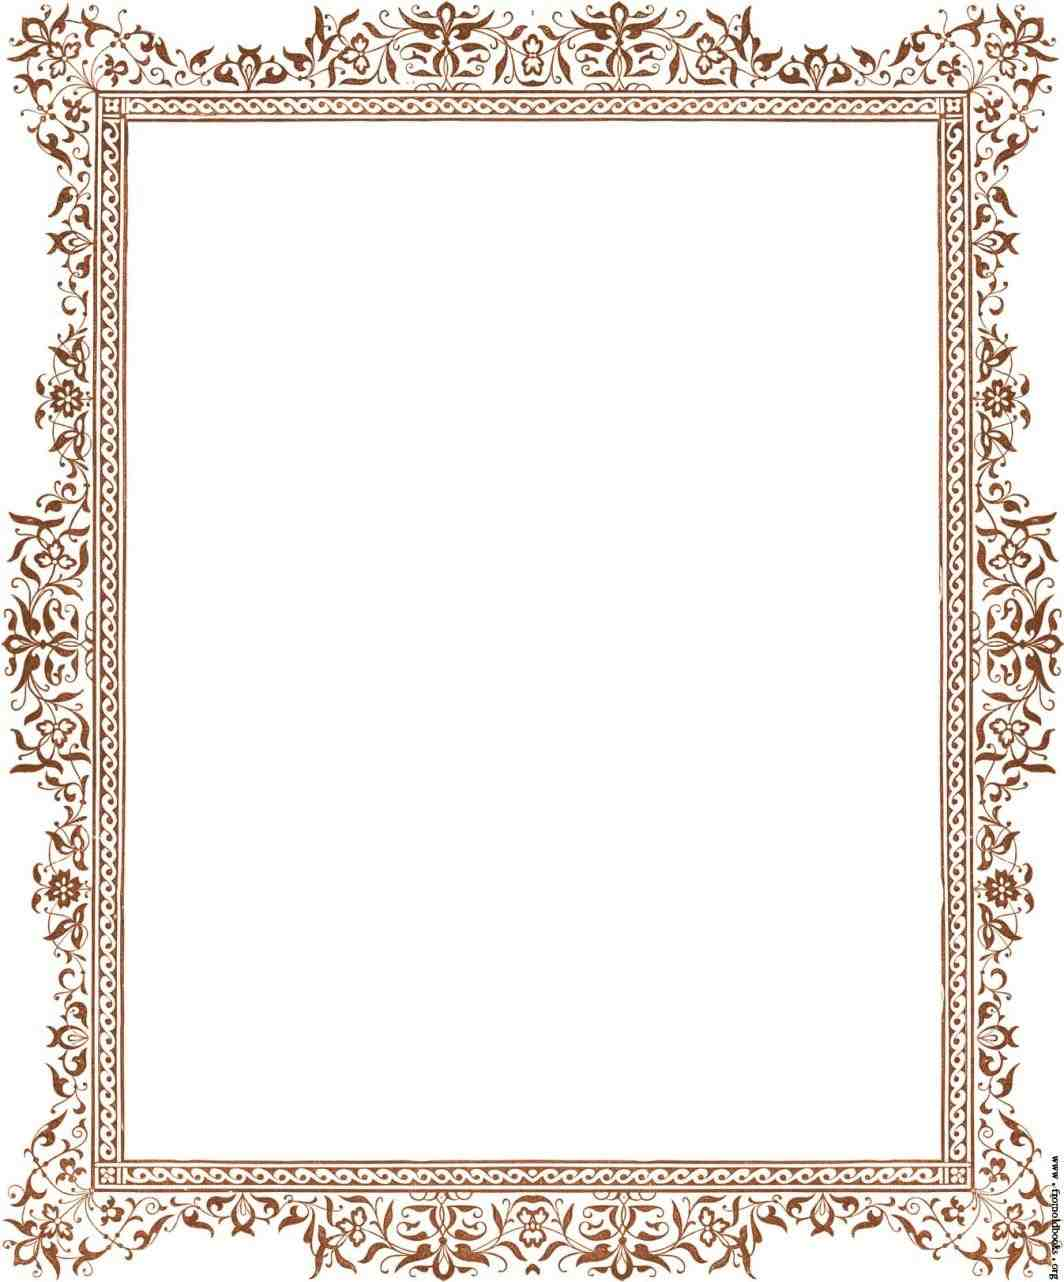 1064x1282 Blue Christmas Borders For Microsoft Word cheminee.website